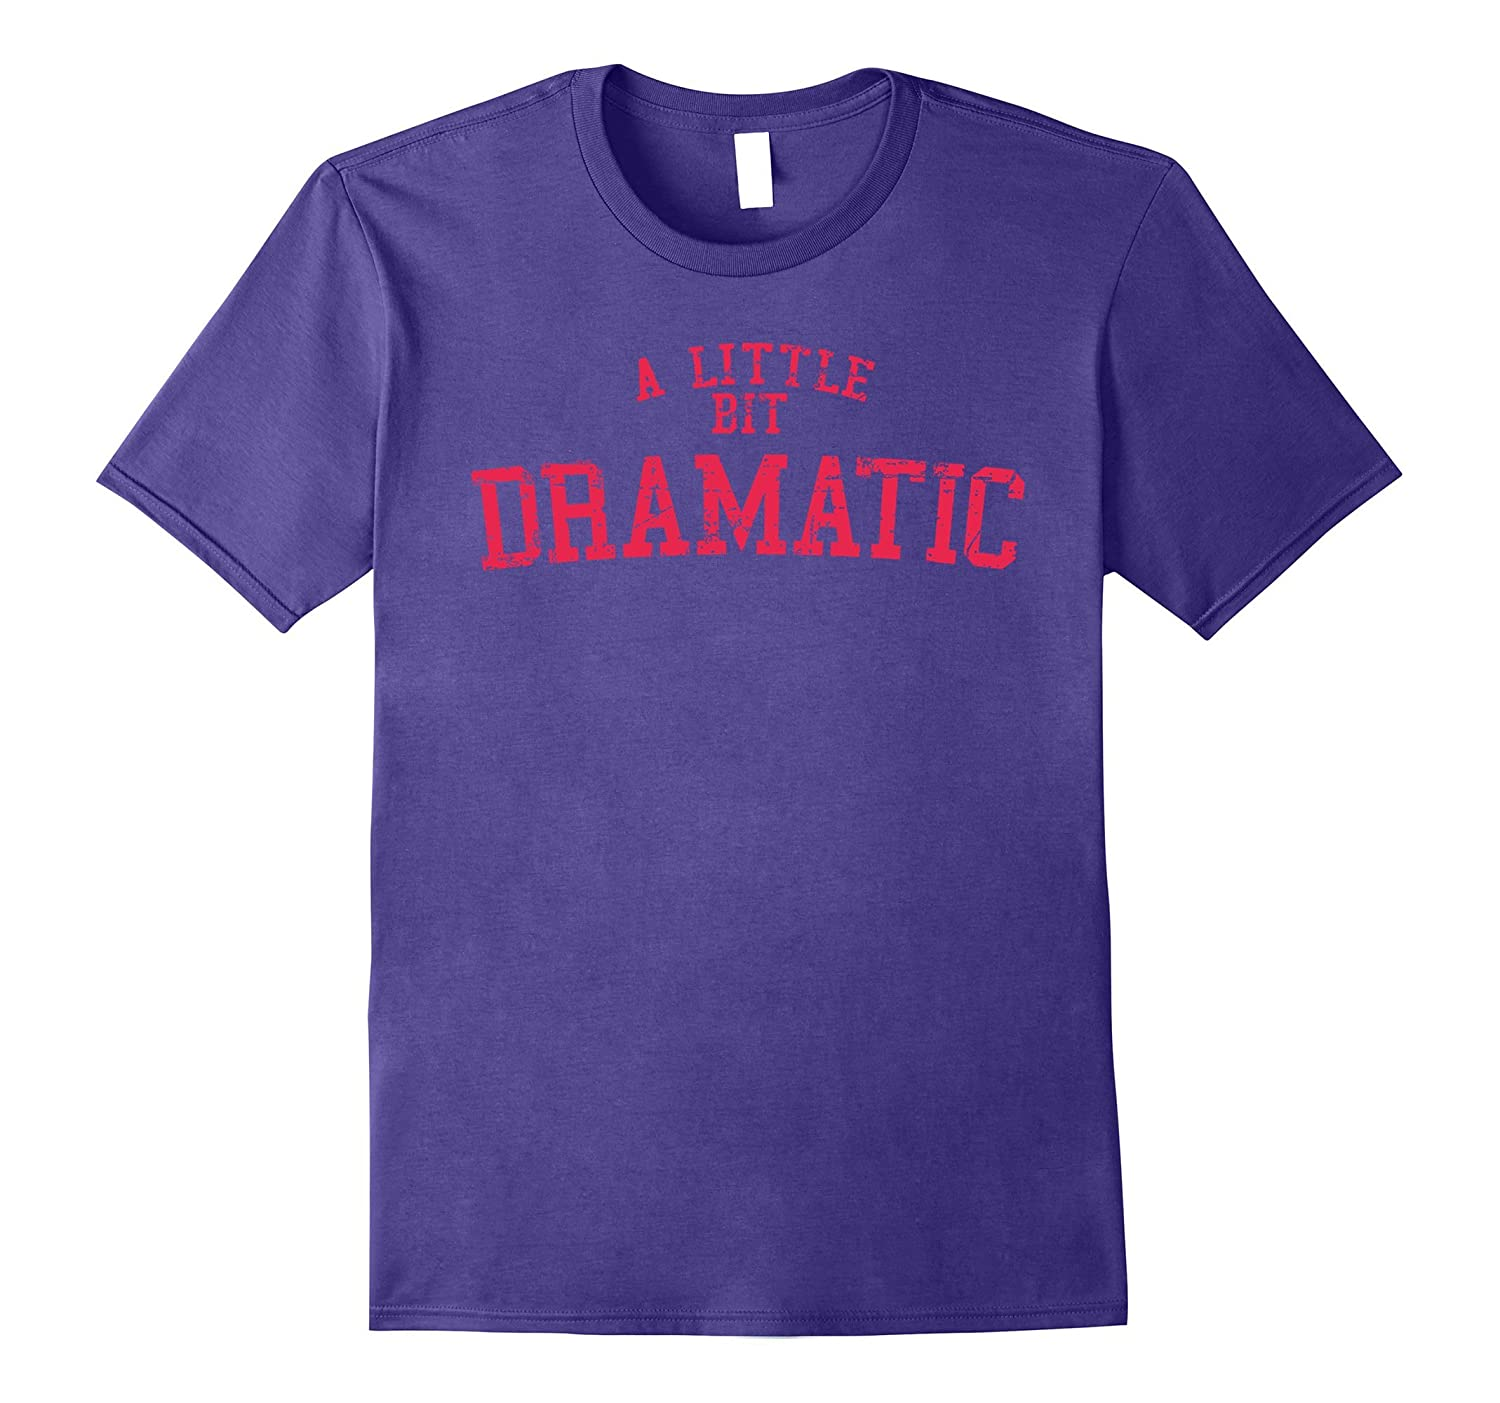 A Little Bit Dramatic Shirt - Girls T-Shirt like the Movie-T-Shirt